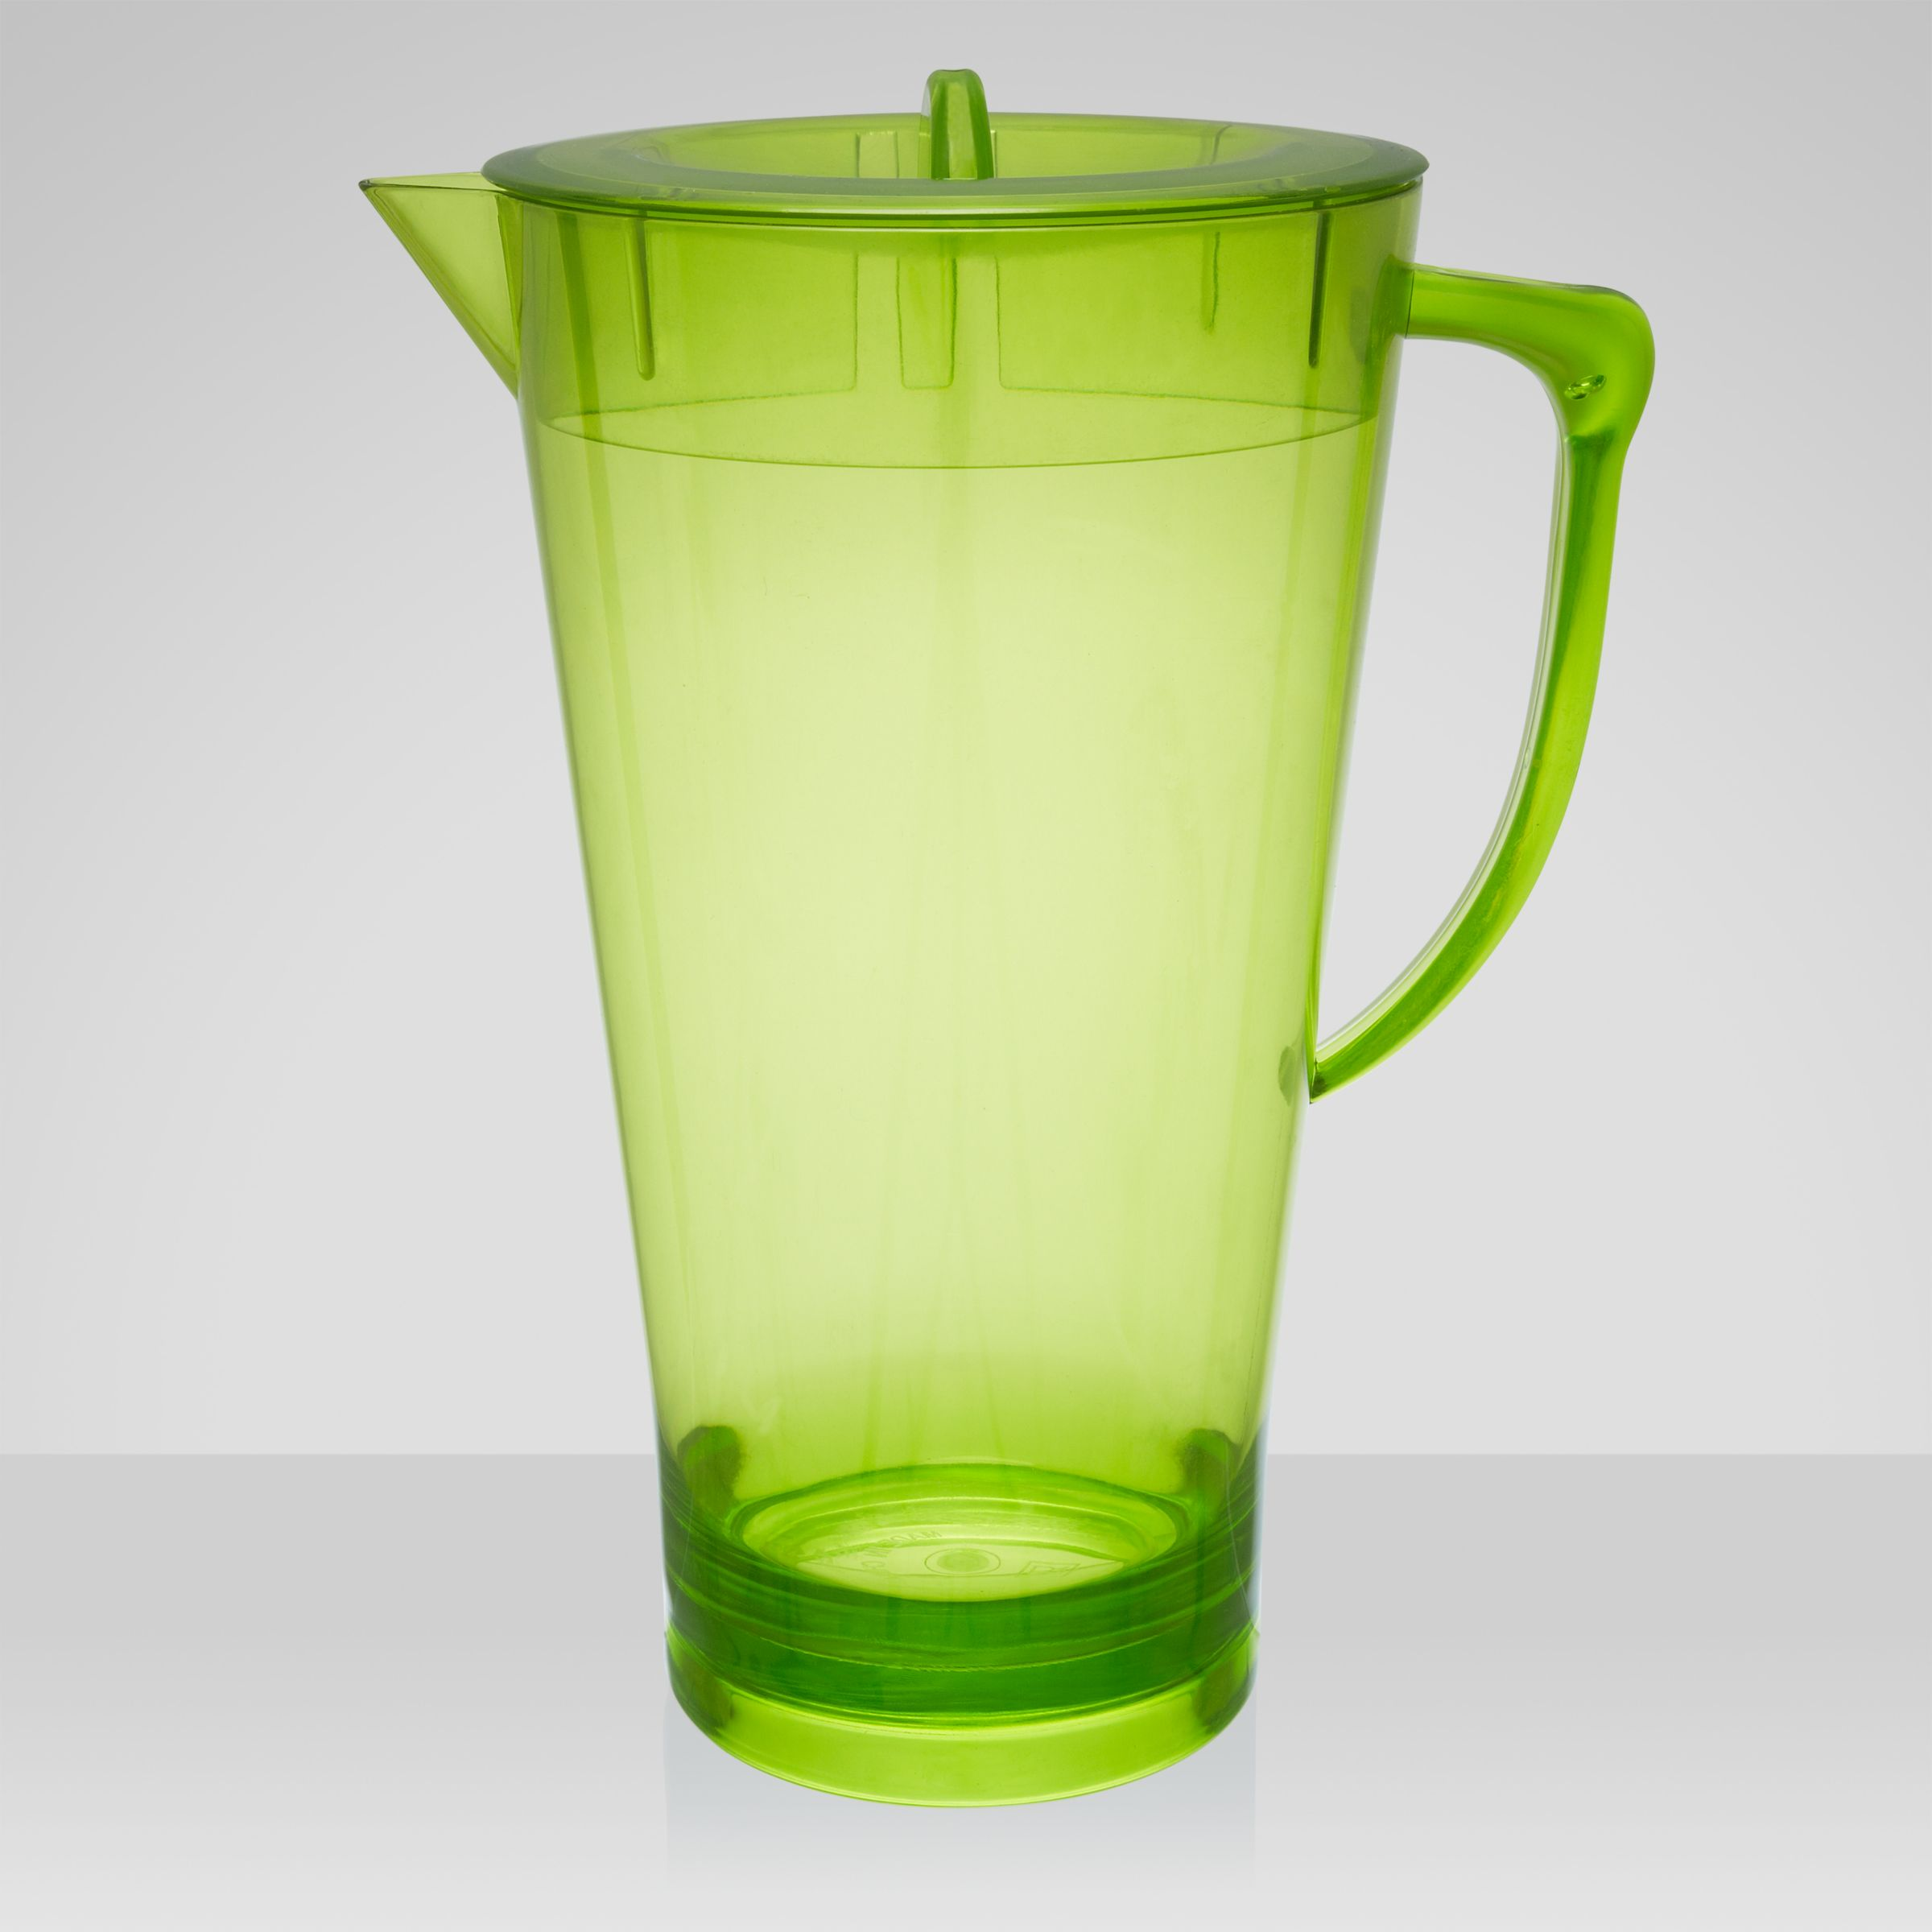 John Lewis Playnation Acrylic Pitcher, Lime